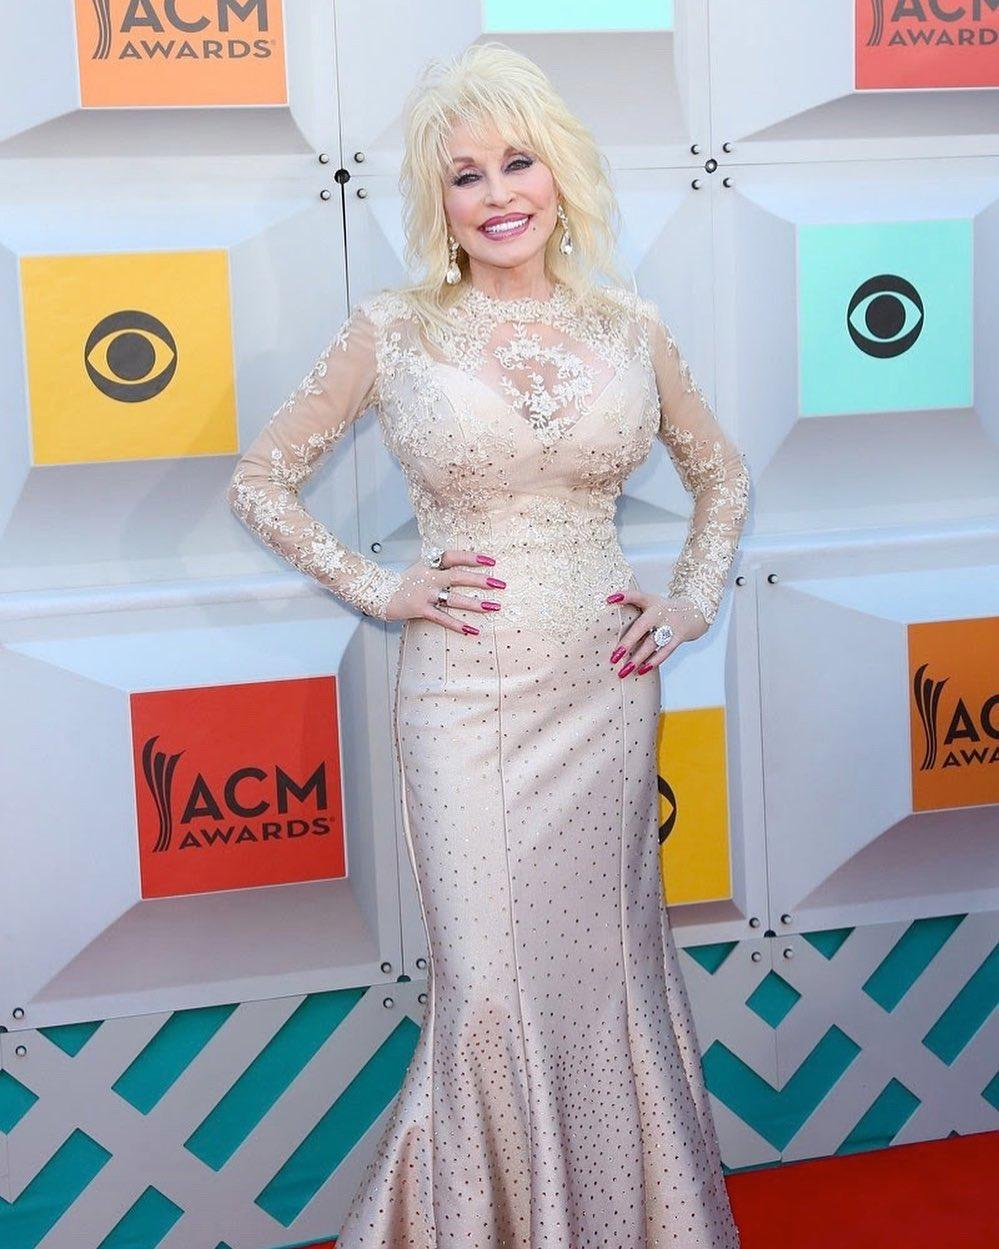 Dolly Parton looks incredible in this net dress at an event